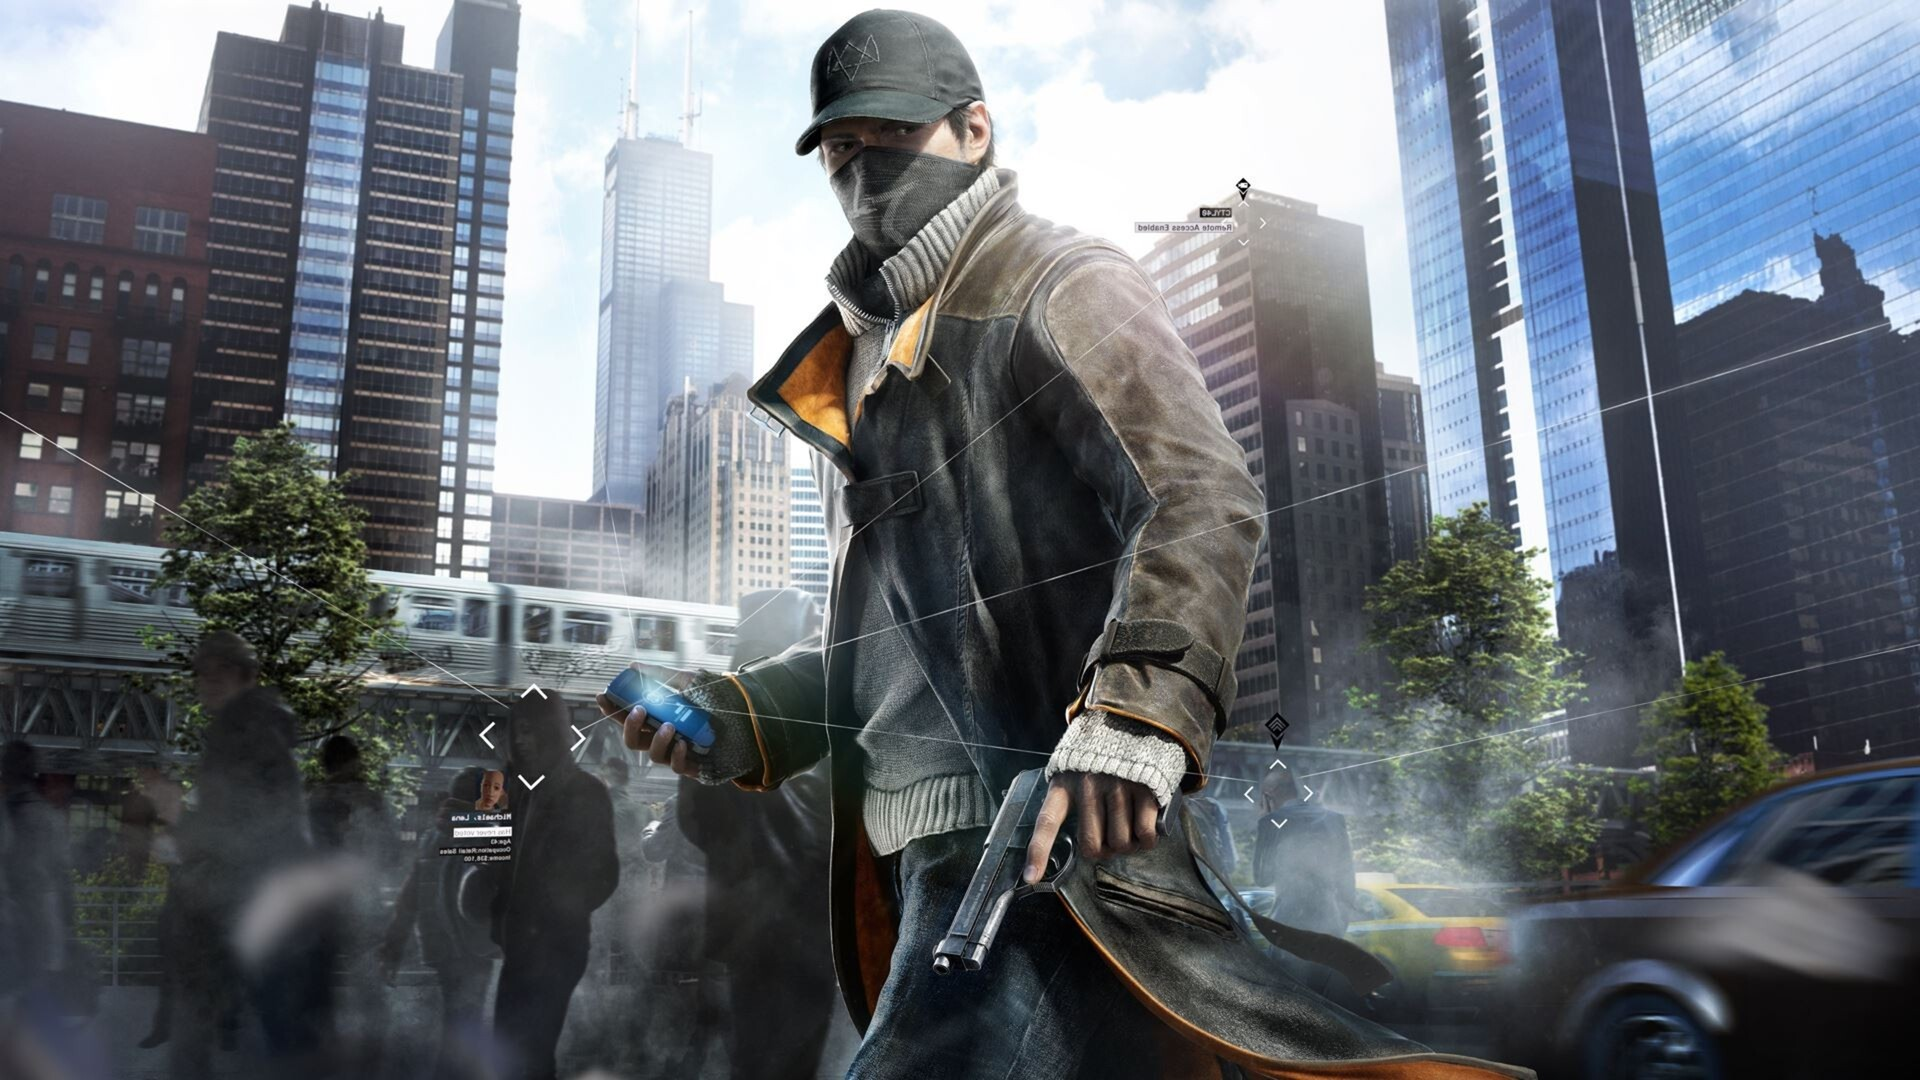 Watch Dogs High Resolution Games Hd Wallpaper For Mobile: 1920x1080 Watch Dogs Aiden Pearce Laptop Full HD 1080P HD